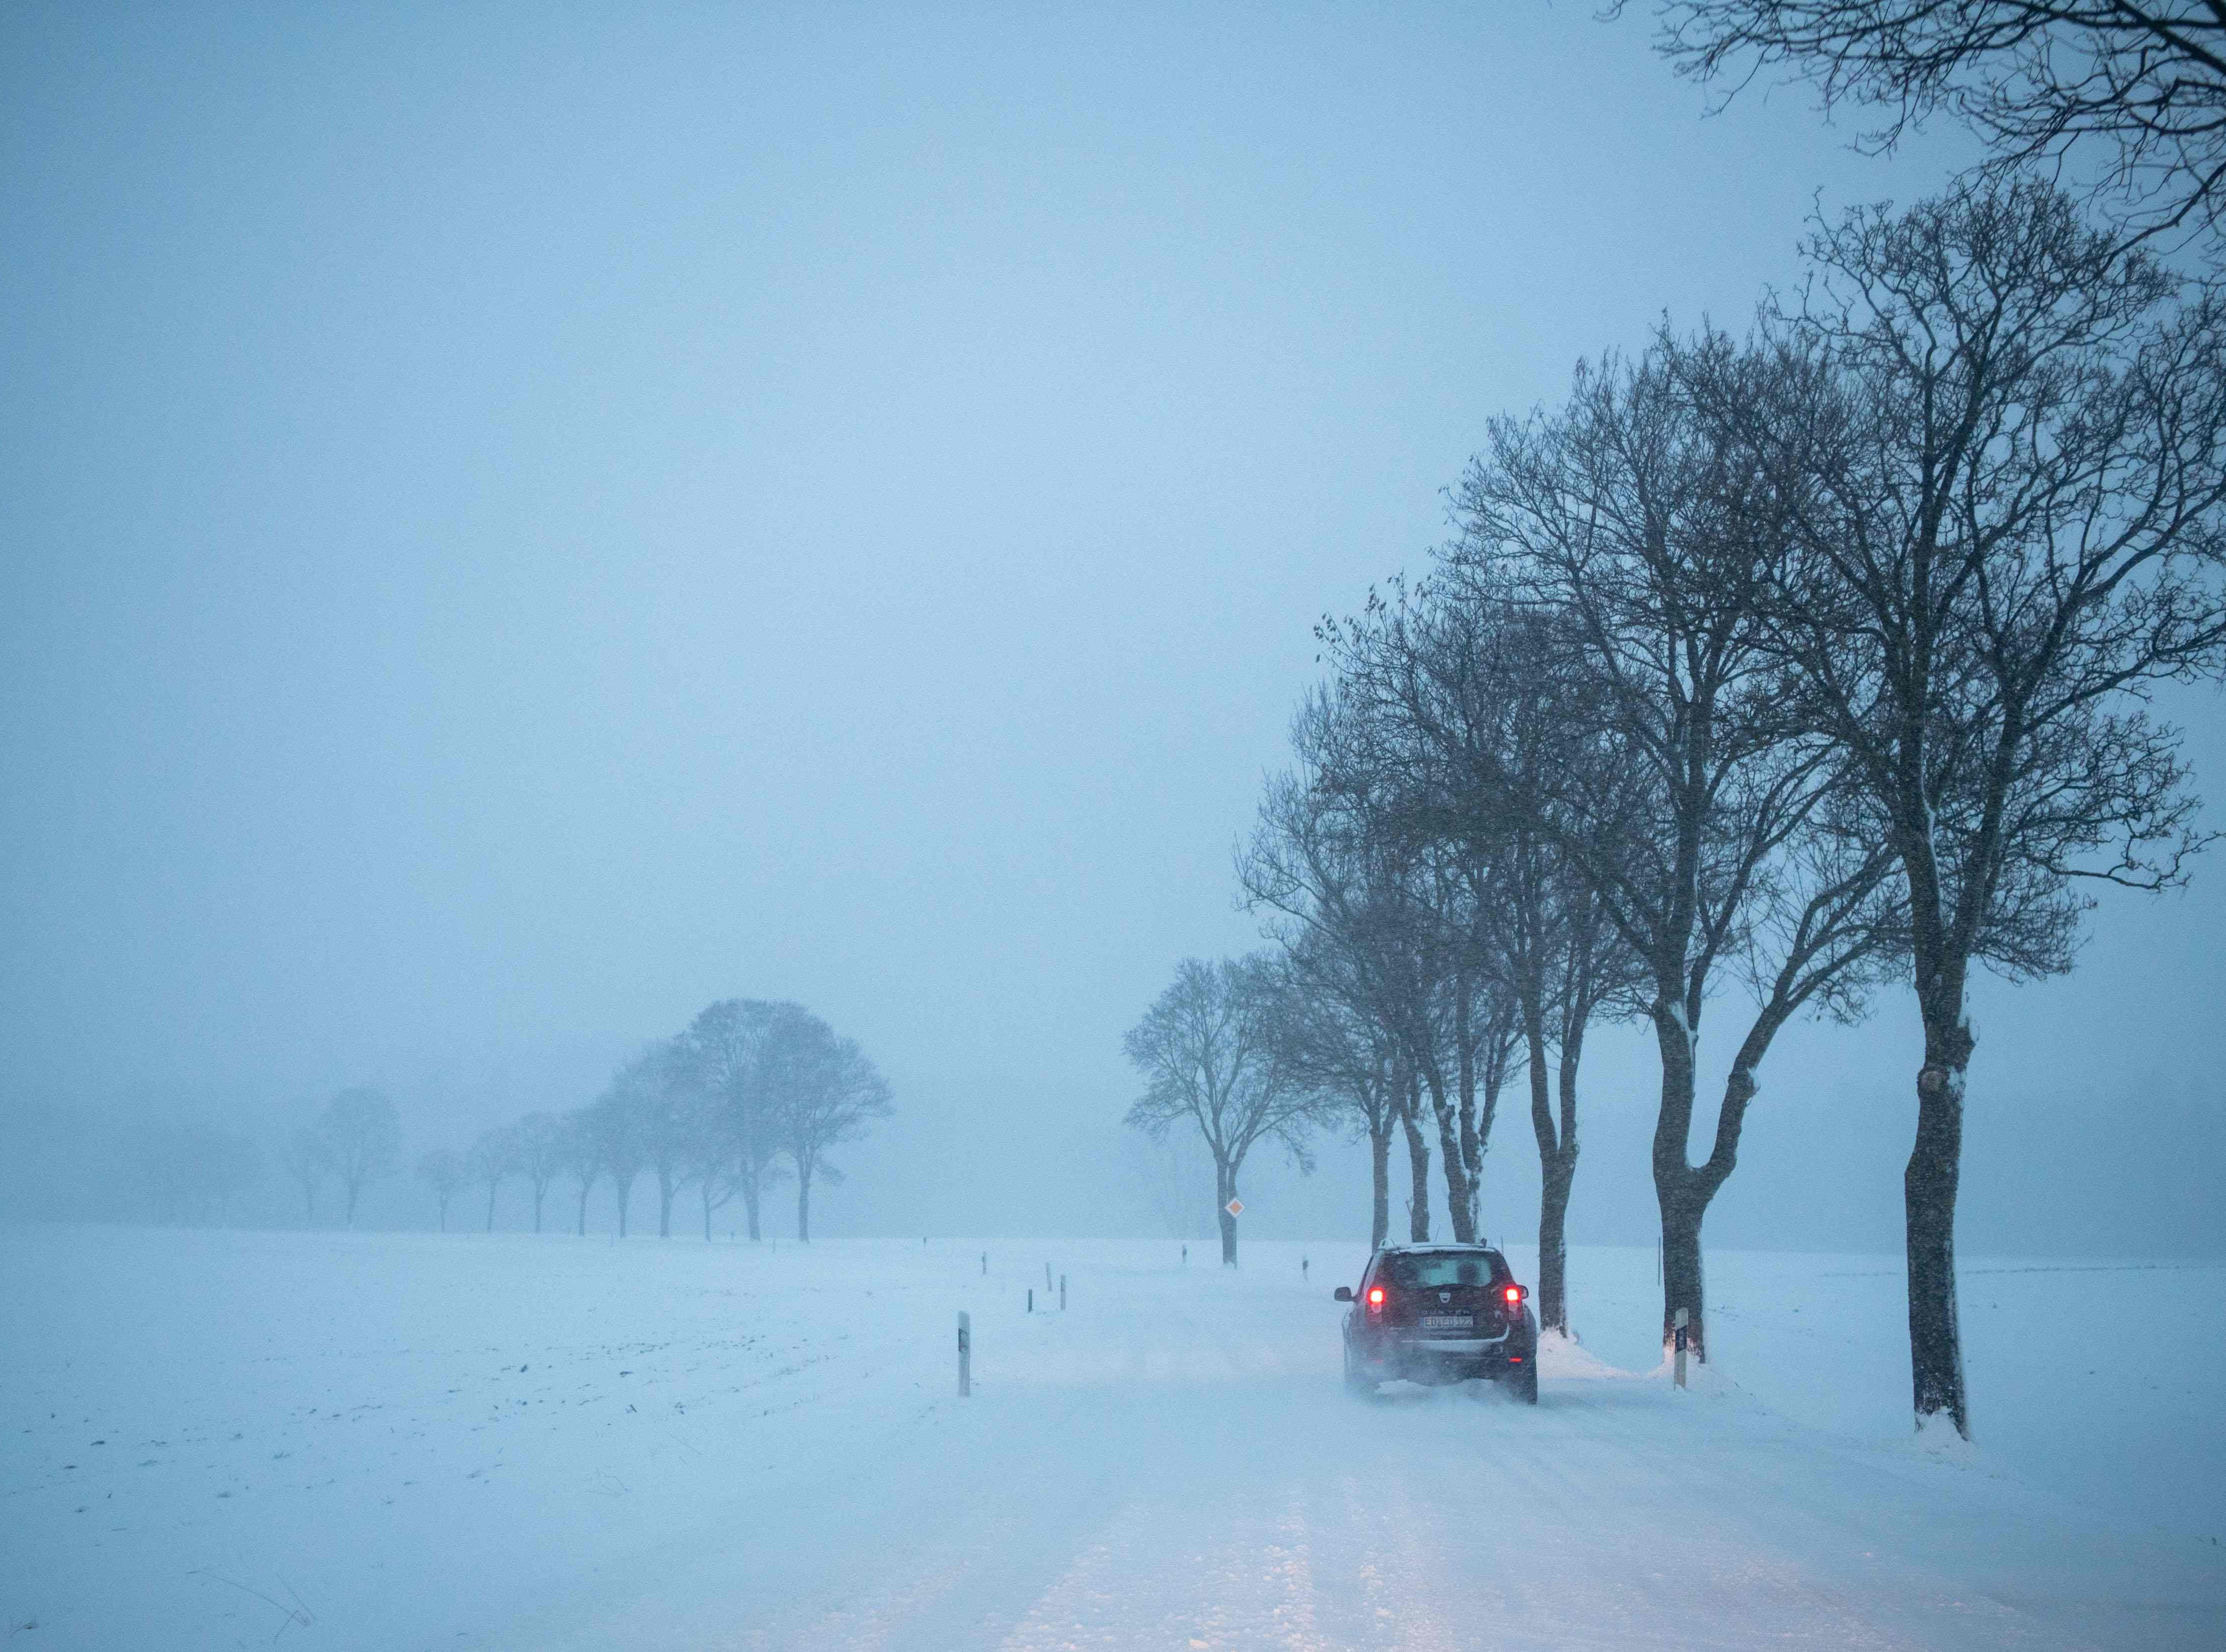 A car drives on a snow-covered road in Hohenlinden, Germany.